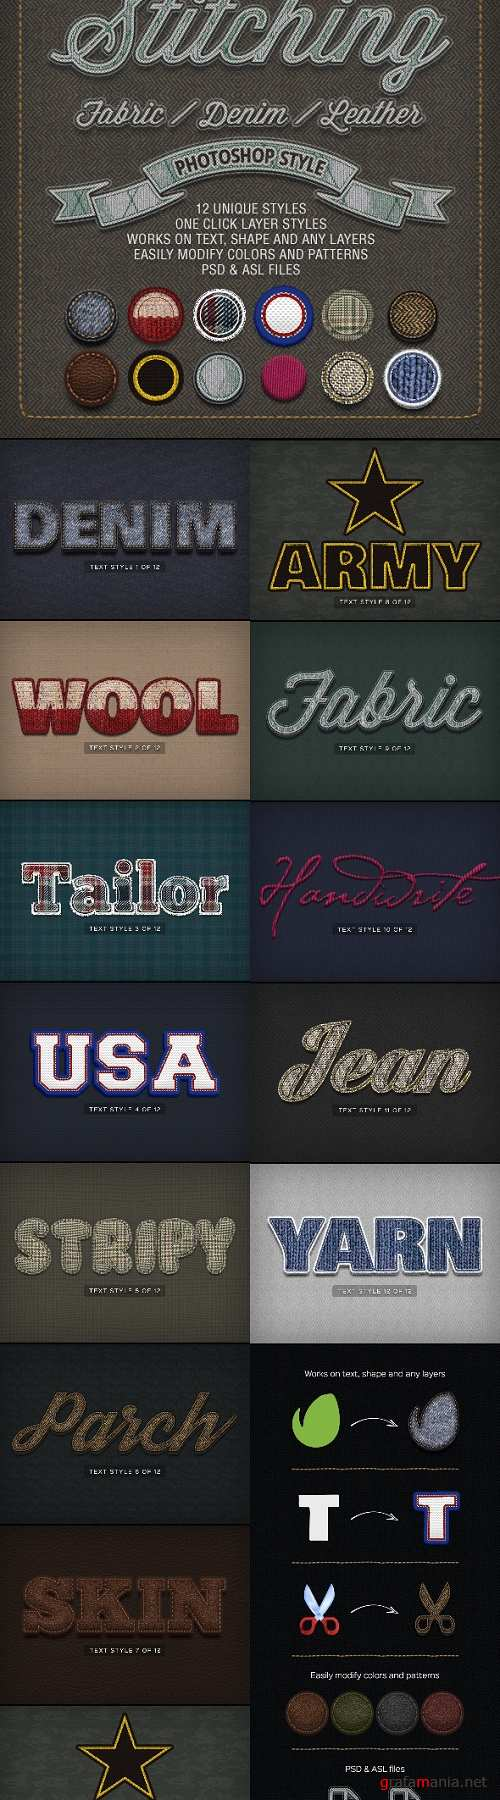 Stitching Fabric - Denim - Leather Text Effects - 8230591